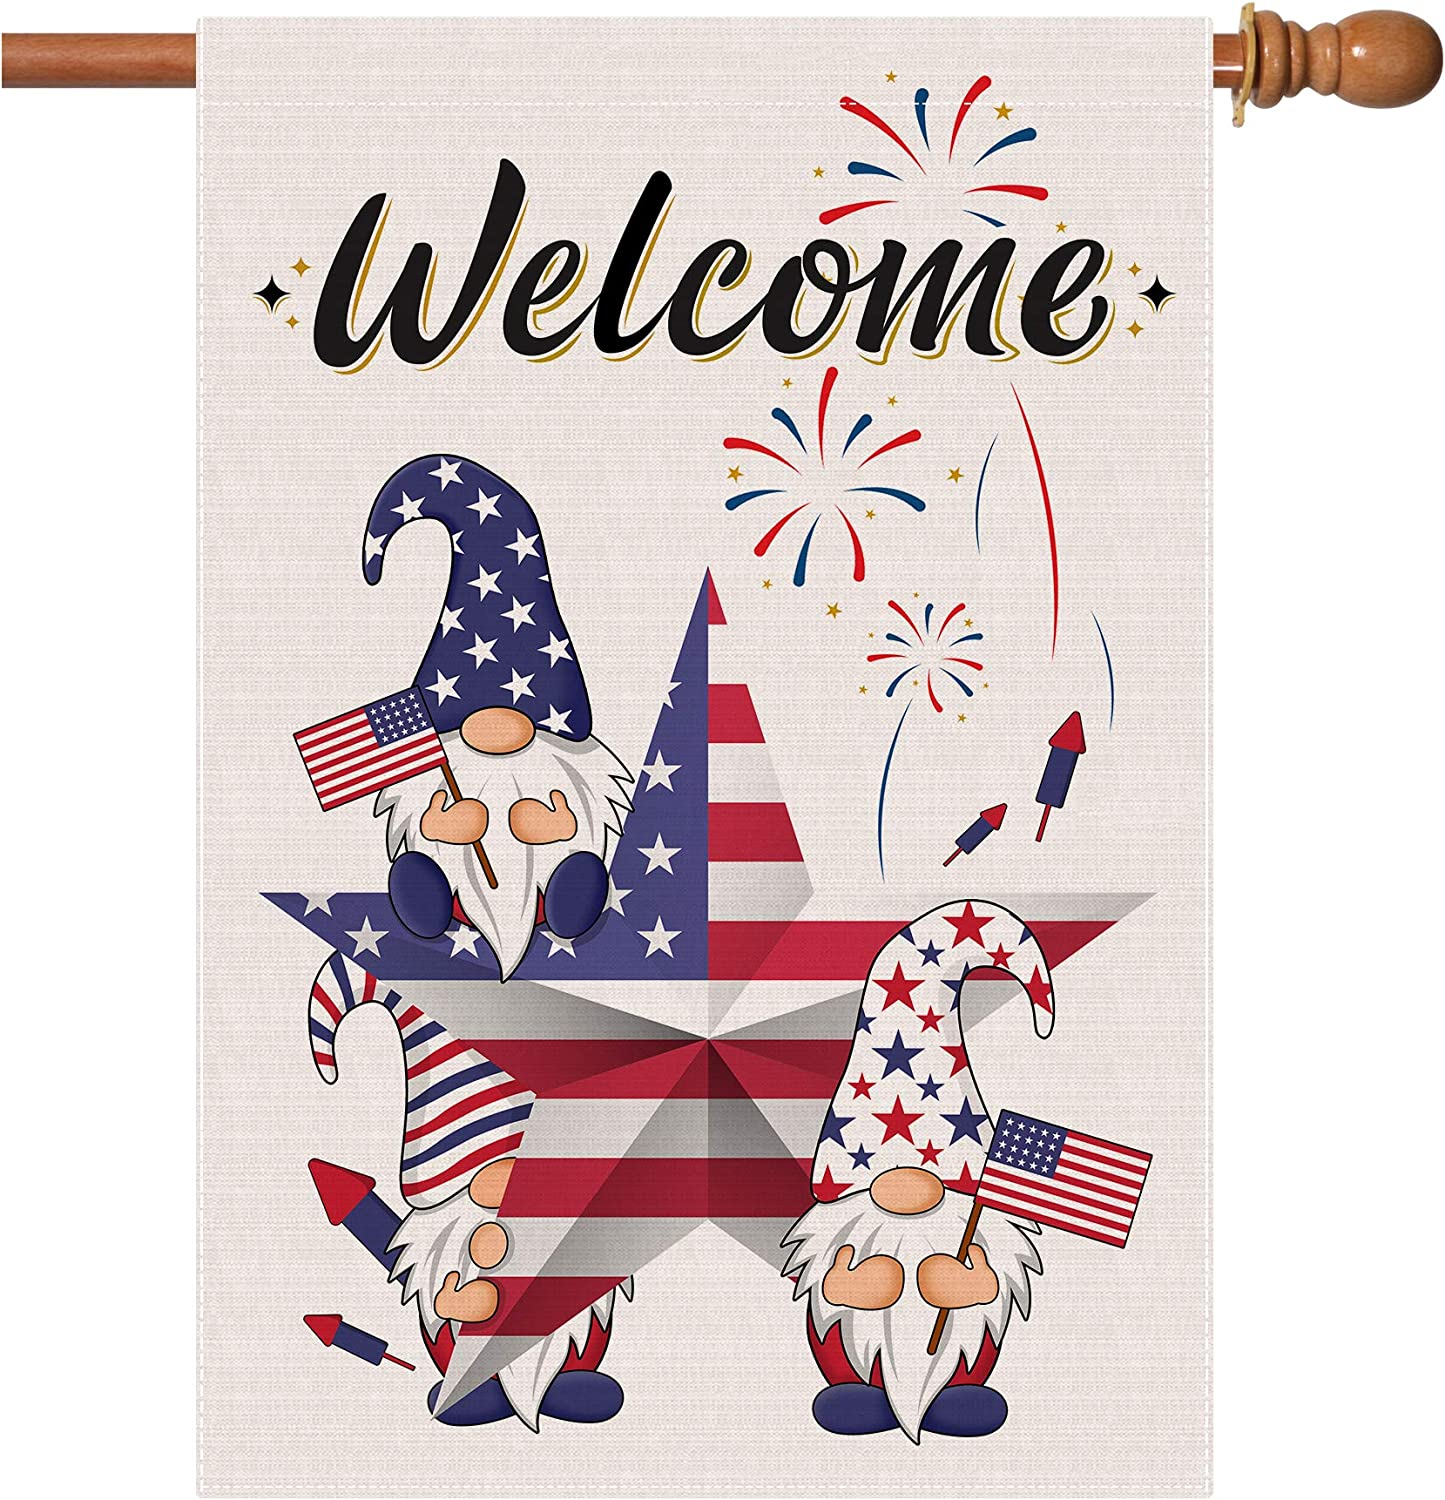 pinata 4th of July Flags 28 x 40 Double Sided, Patriotic American Star Burlap Large House Flag Porch, Memorial Independence Day Gnomes Welcome Decorative Garden Signs for Home Decorations